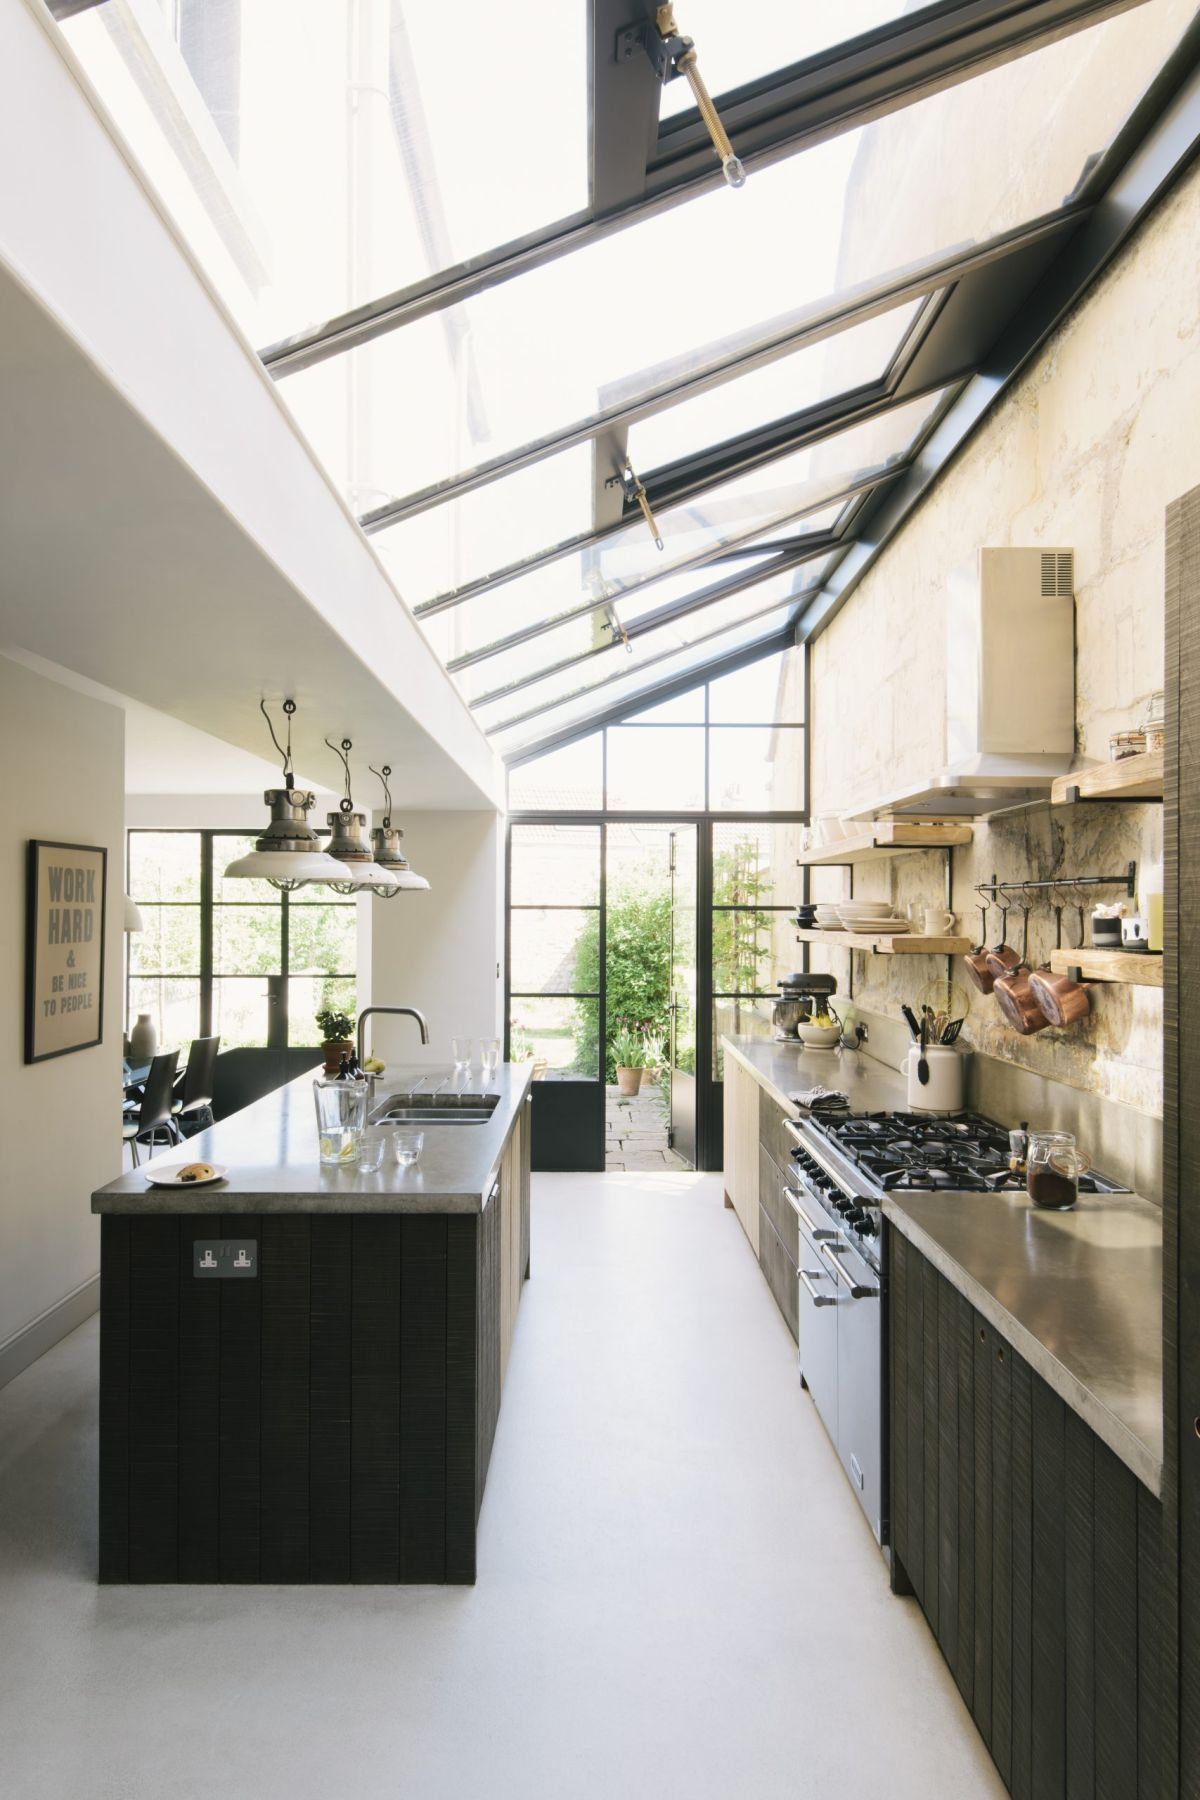 These small kitchen layout ideas will help to maximise your small space